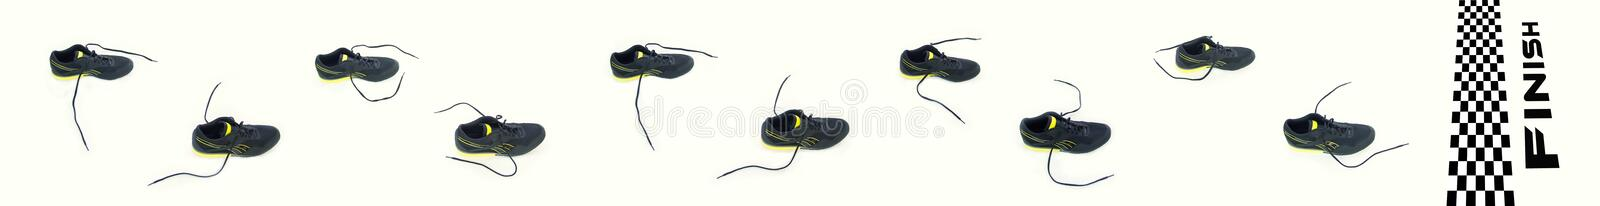 Download Traces stock illustration. Image of foot, naked, illustration - 16272278